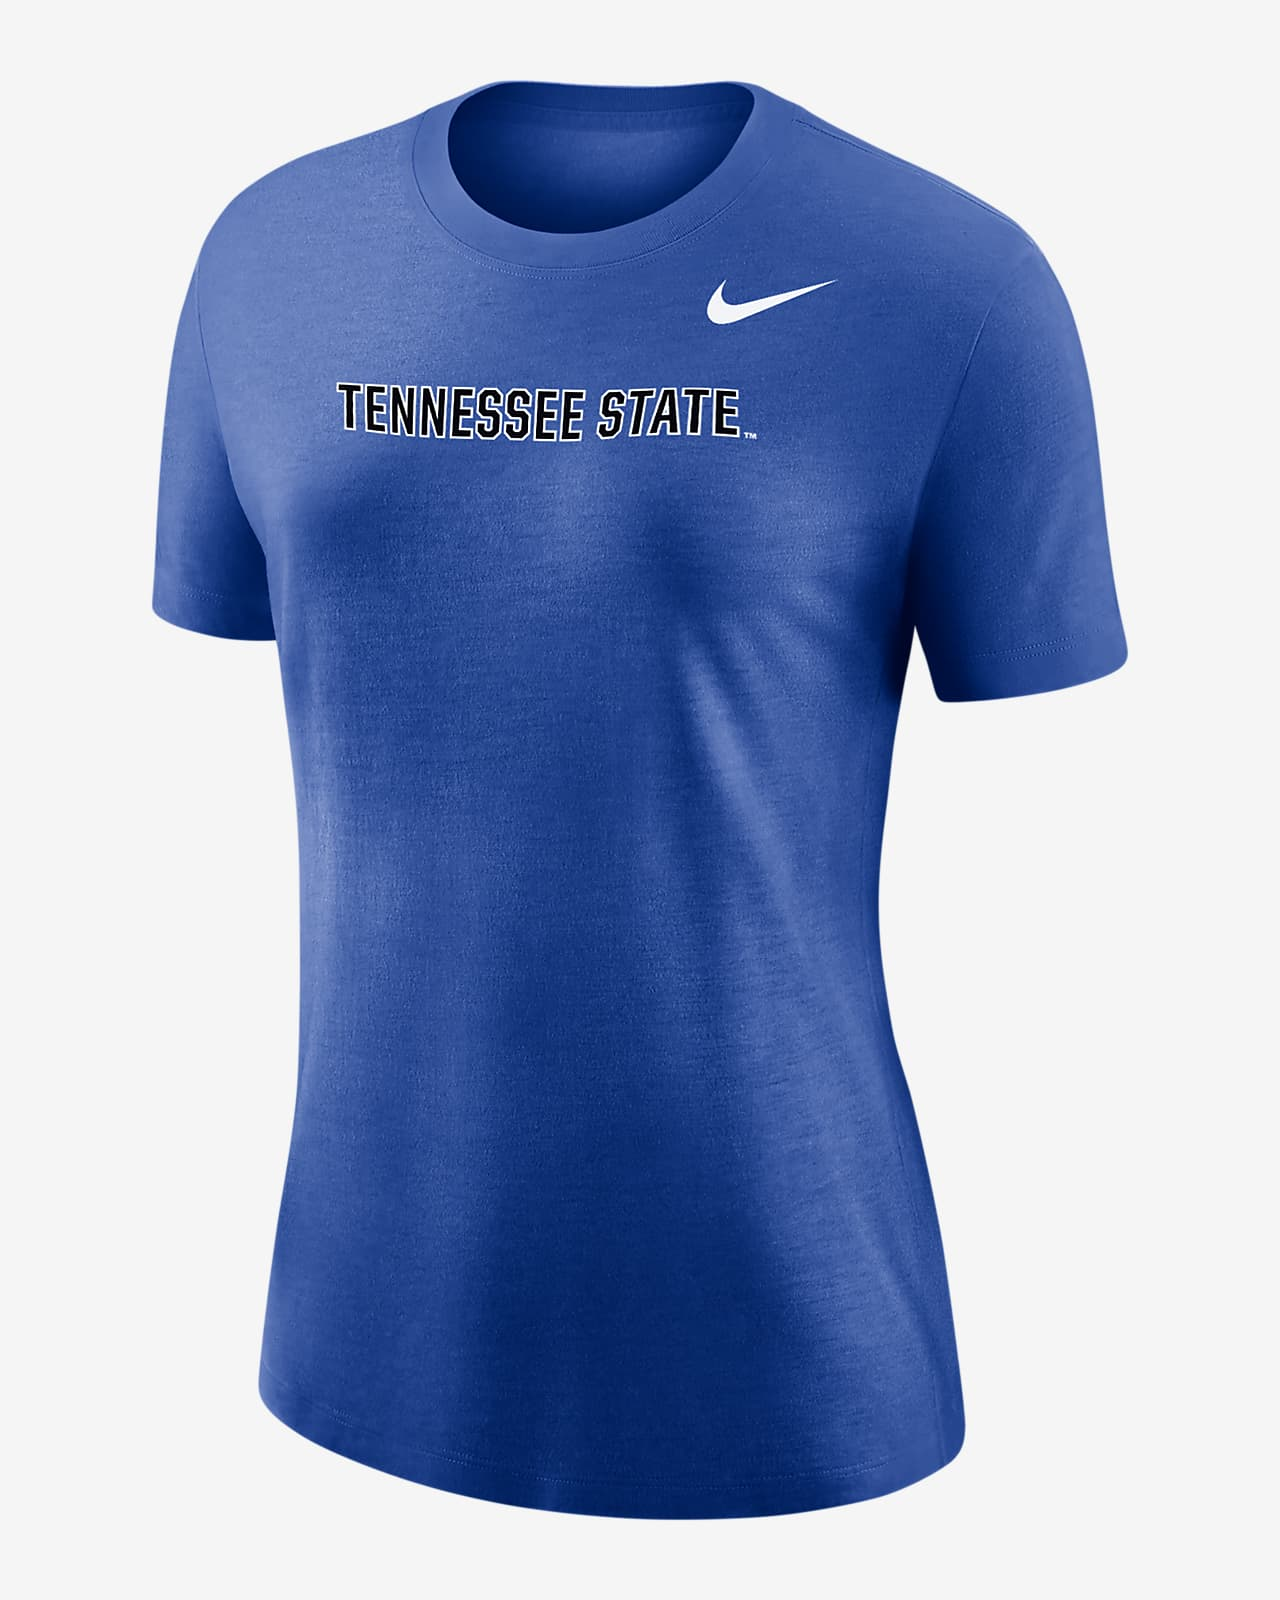 Nike College (Tennessee State) Women's T-Shirt